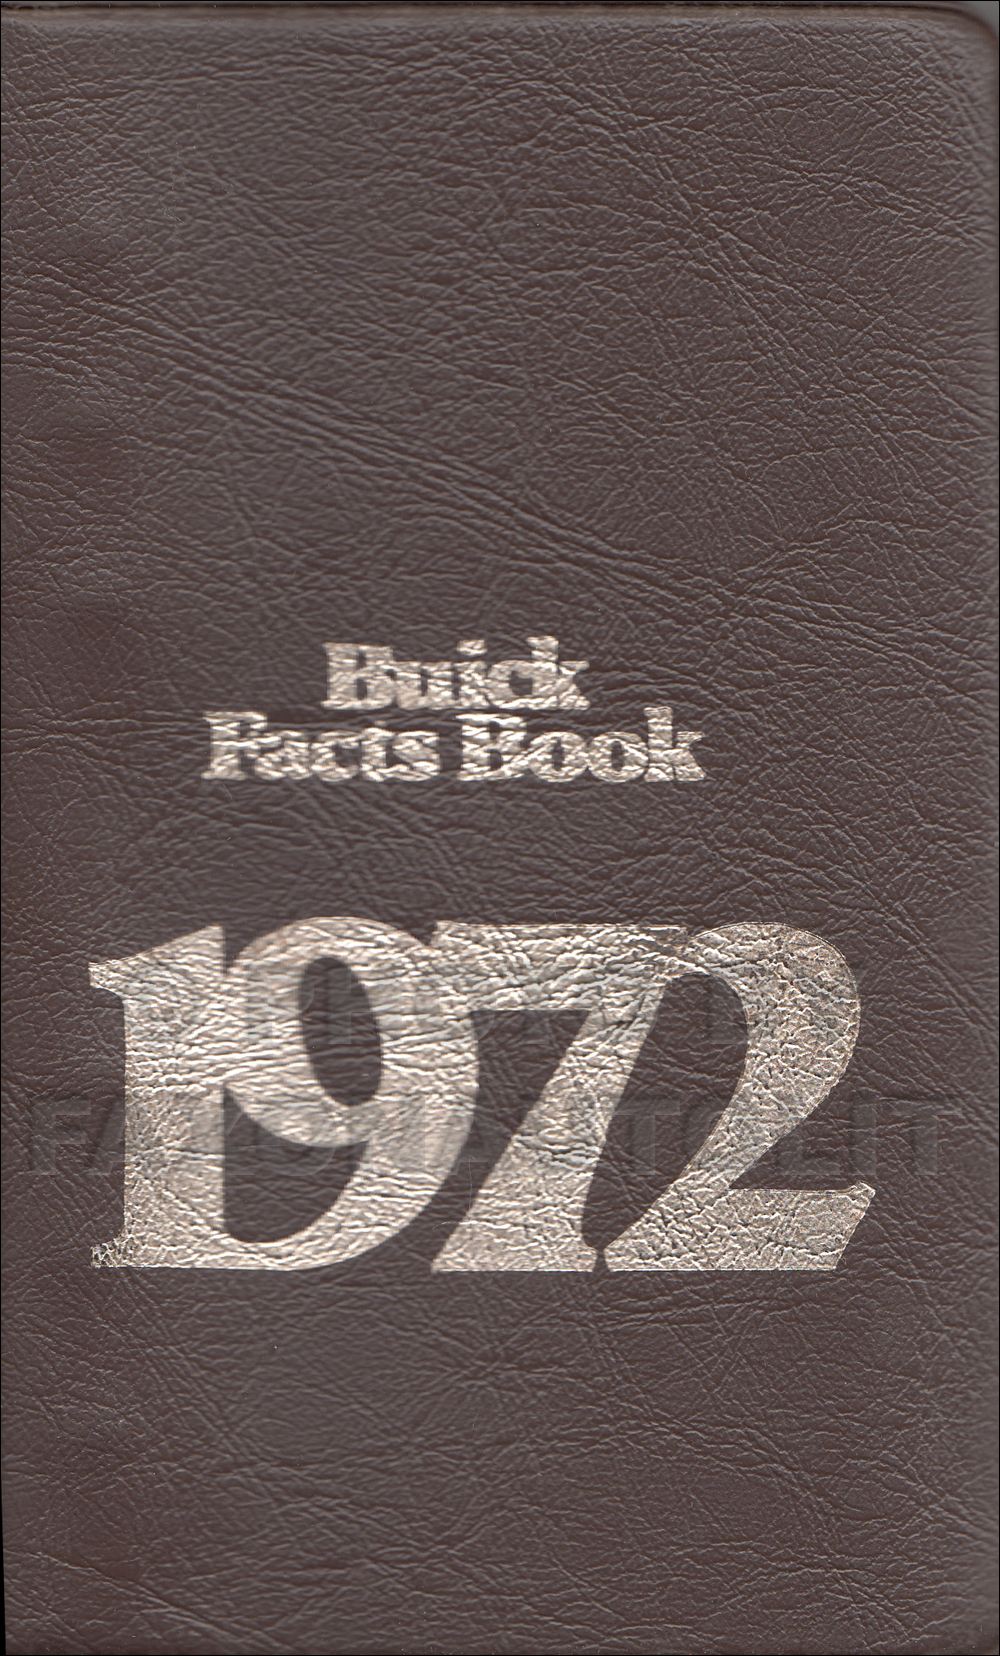 1972 Buick Facts Book Original